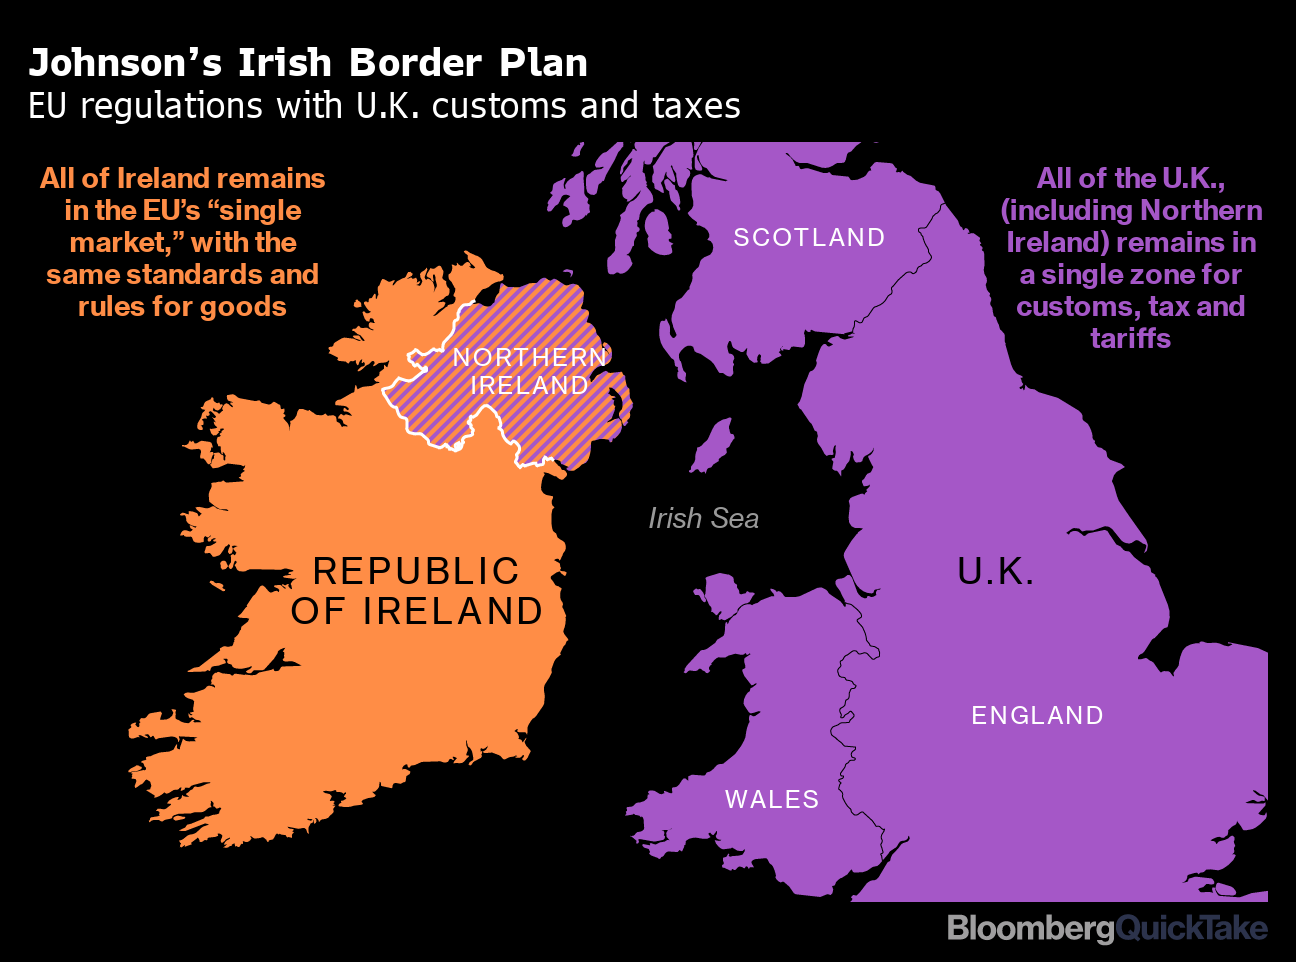 Boris Johnson announces new Brexit proposal with revised plan for Ireland border